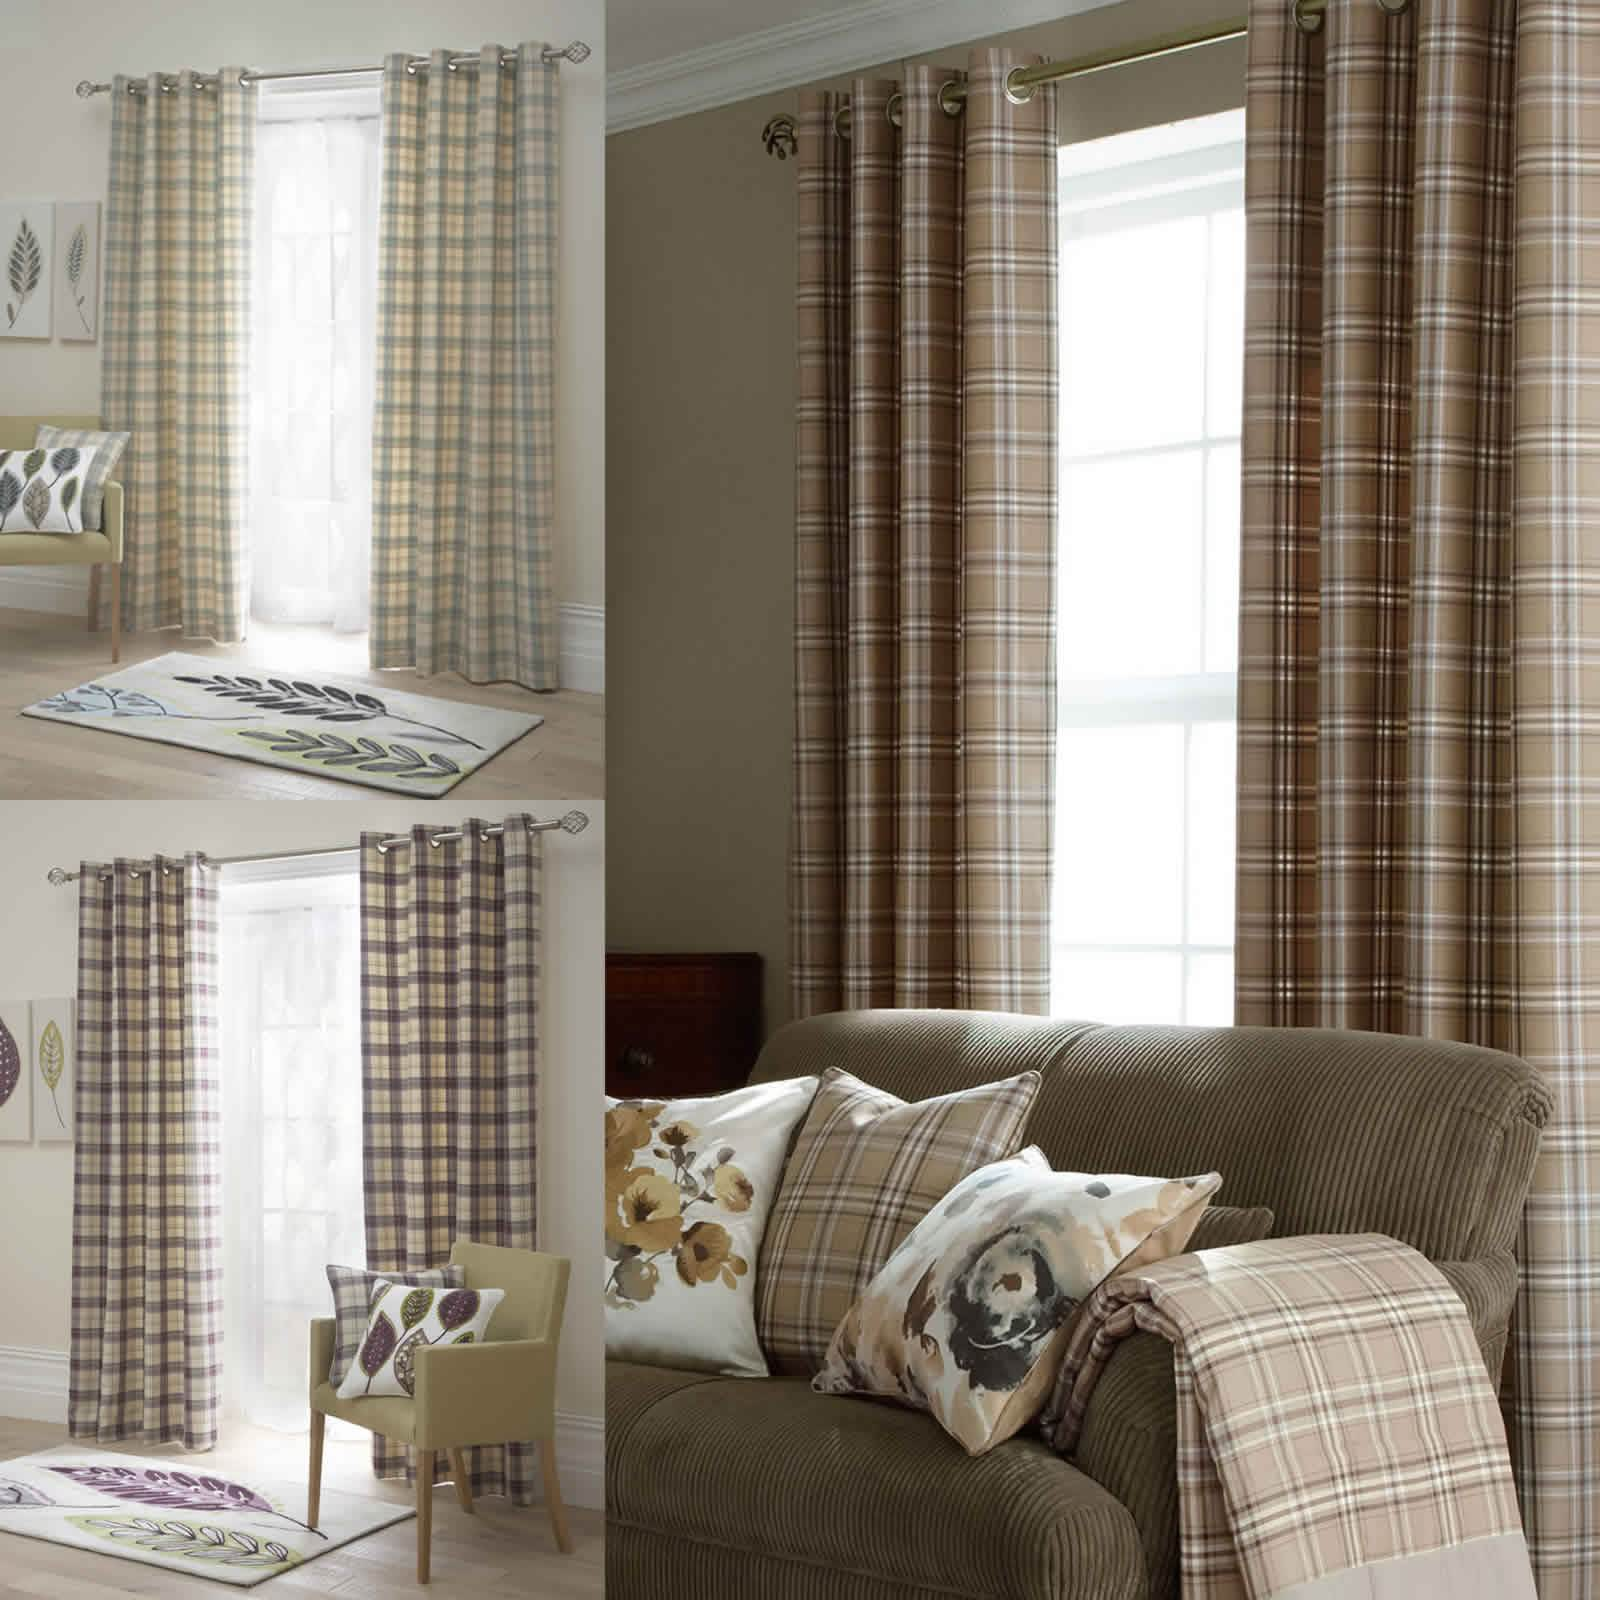 Living Room Ready Made Curtains Tartan Check Lined Eyelet Curtains Ready Made Ring Top Brown